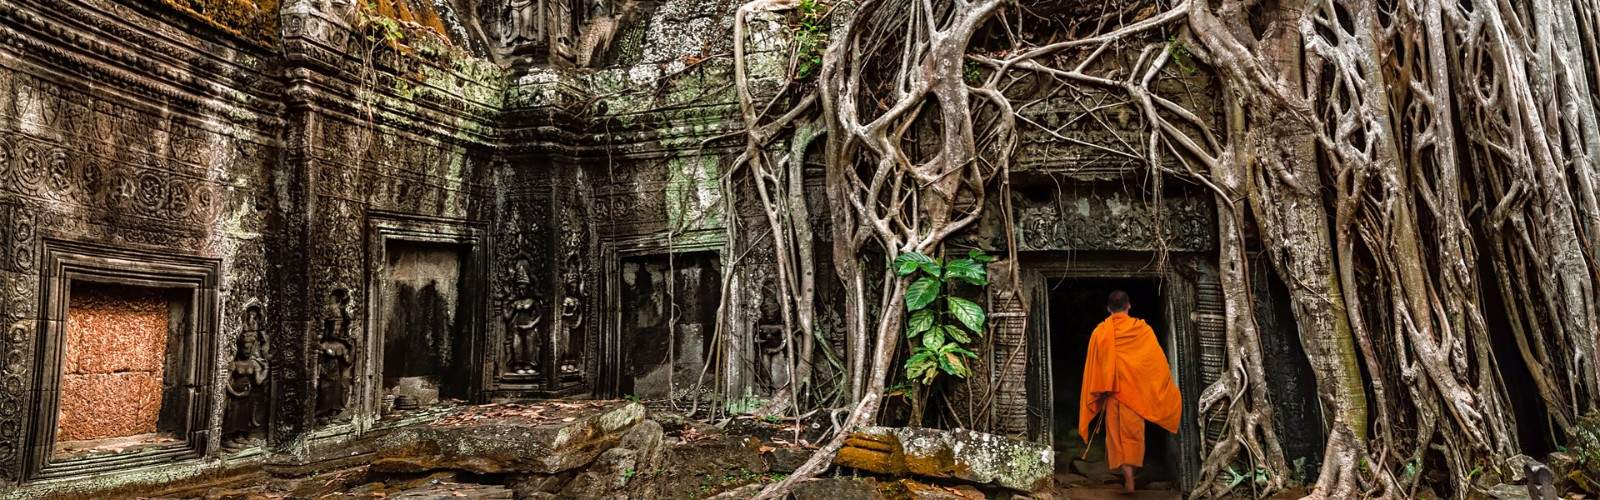 Cambodia and Vietnam Revealed Tour Tour | Wendy Wu Tours